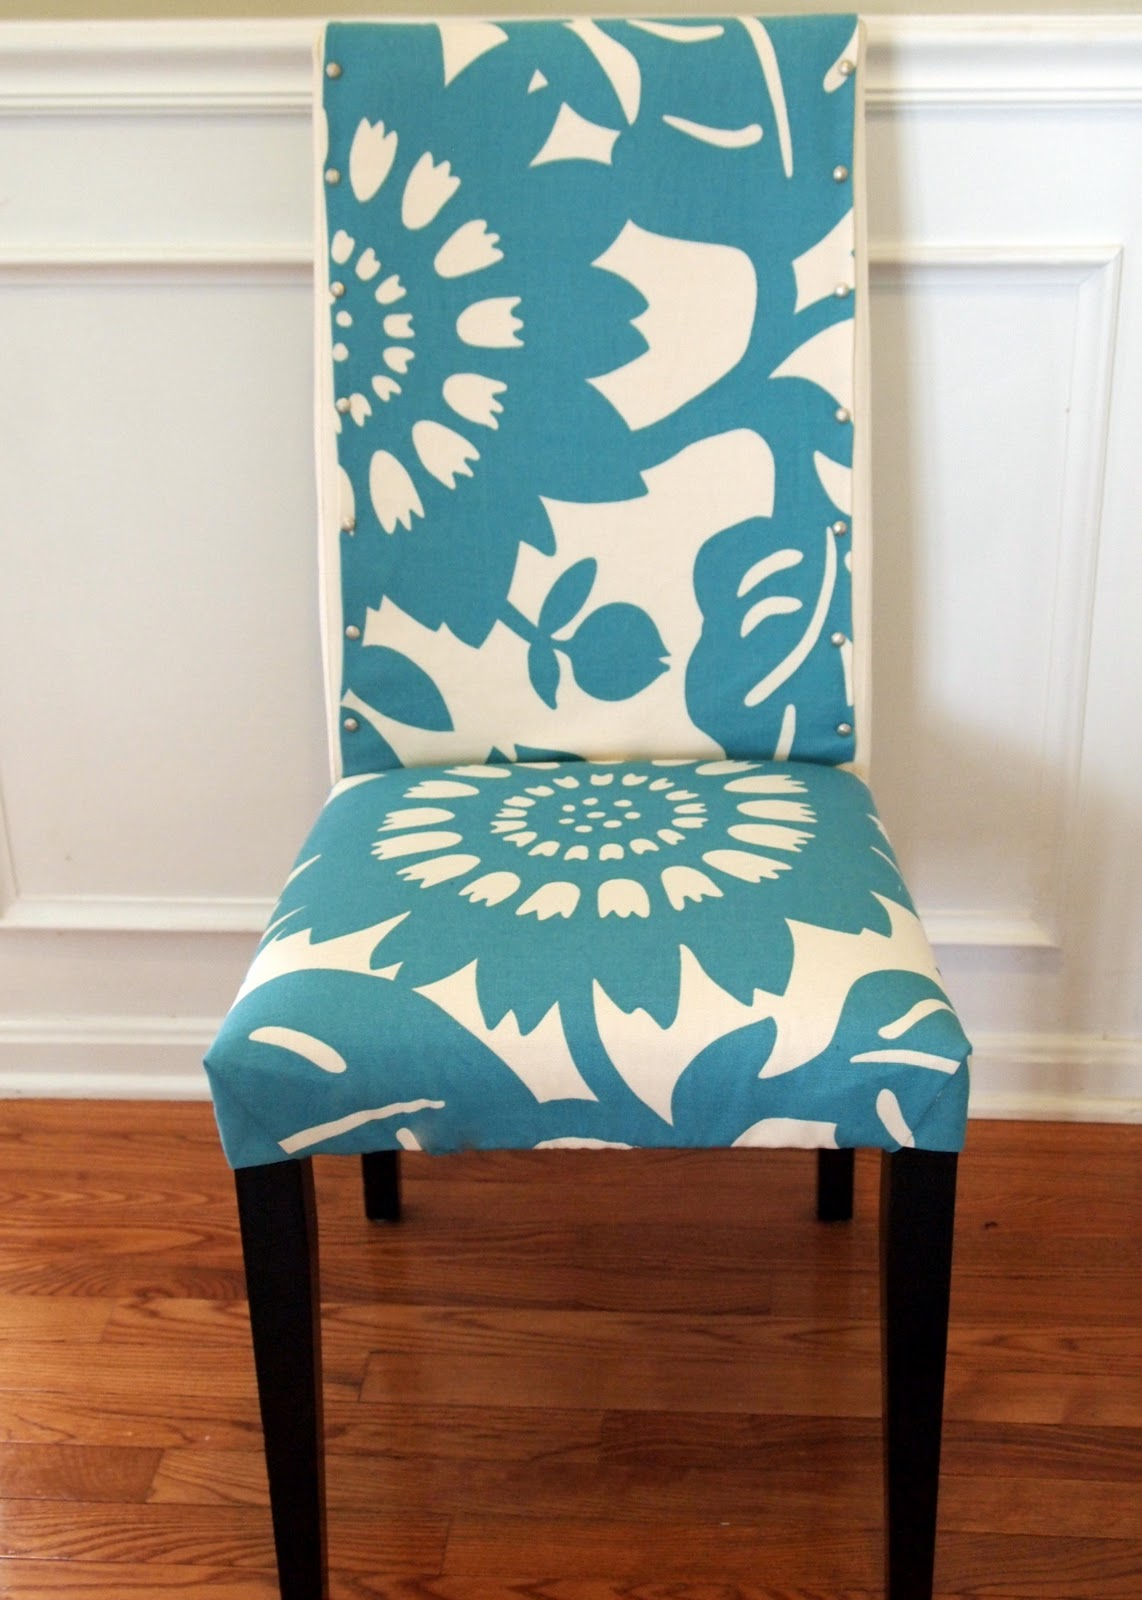 What Type Of Fabric To Cover Kitchen Chairs Church Chair With Kneeler Loveyourroom My Morning Slip Project Using